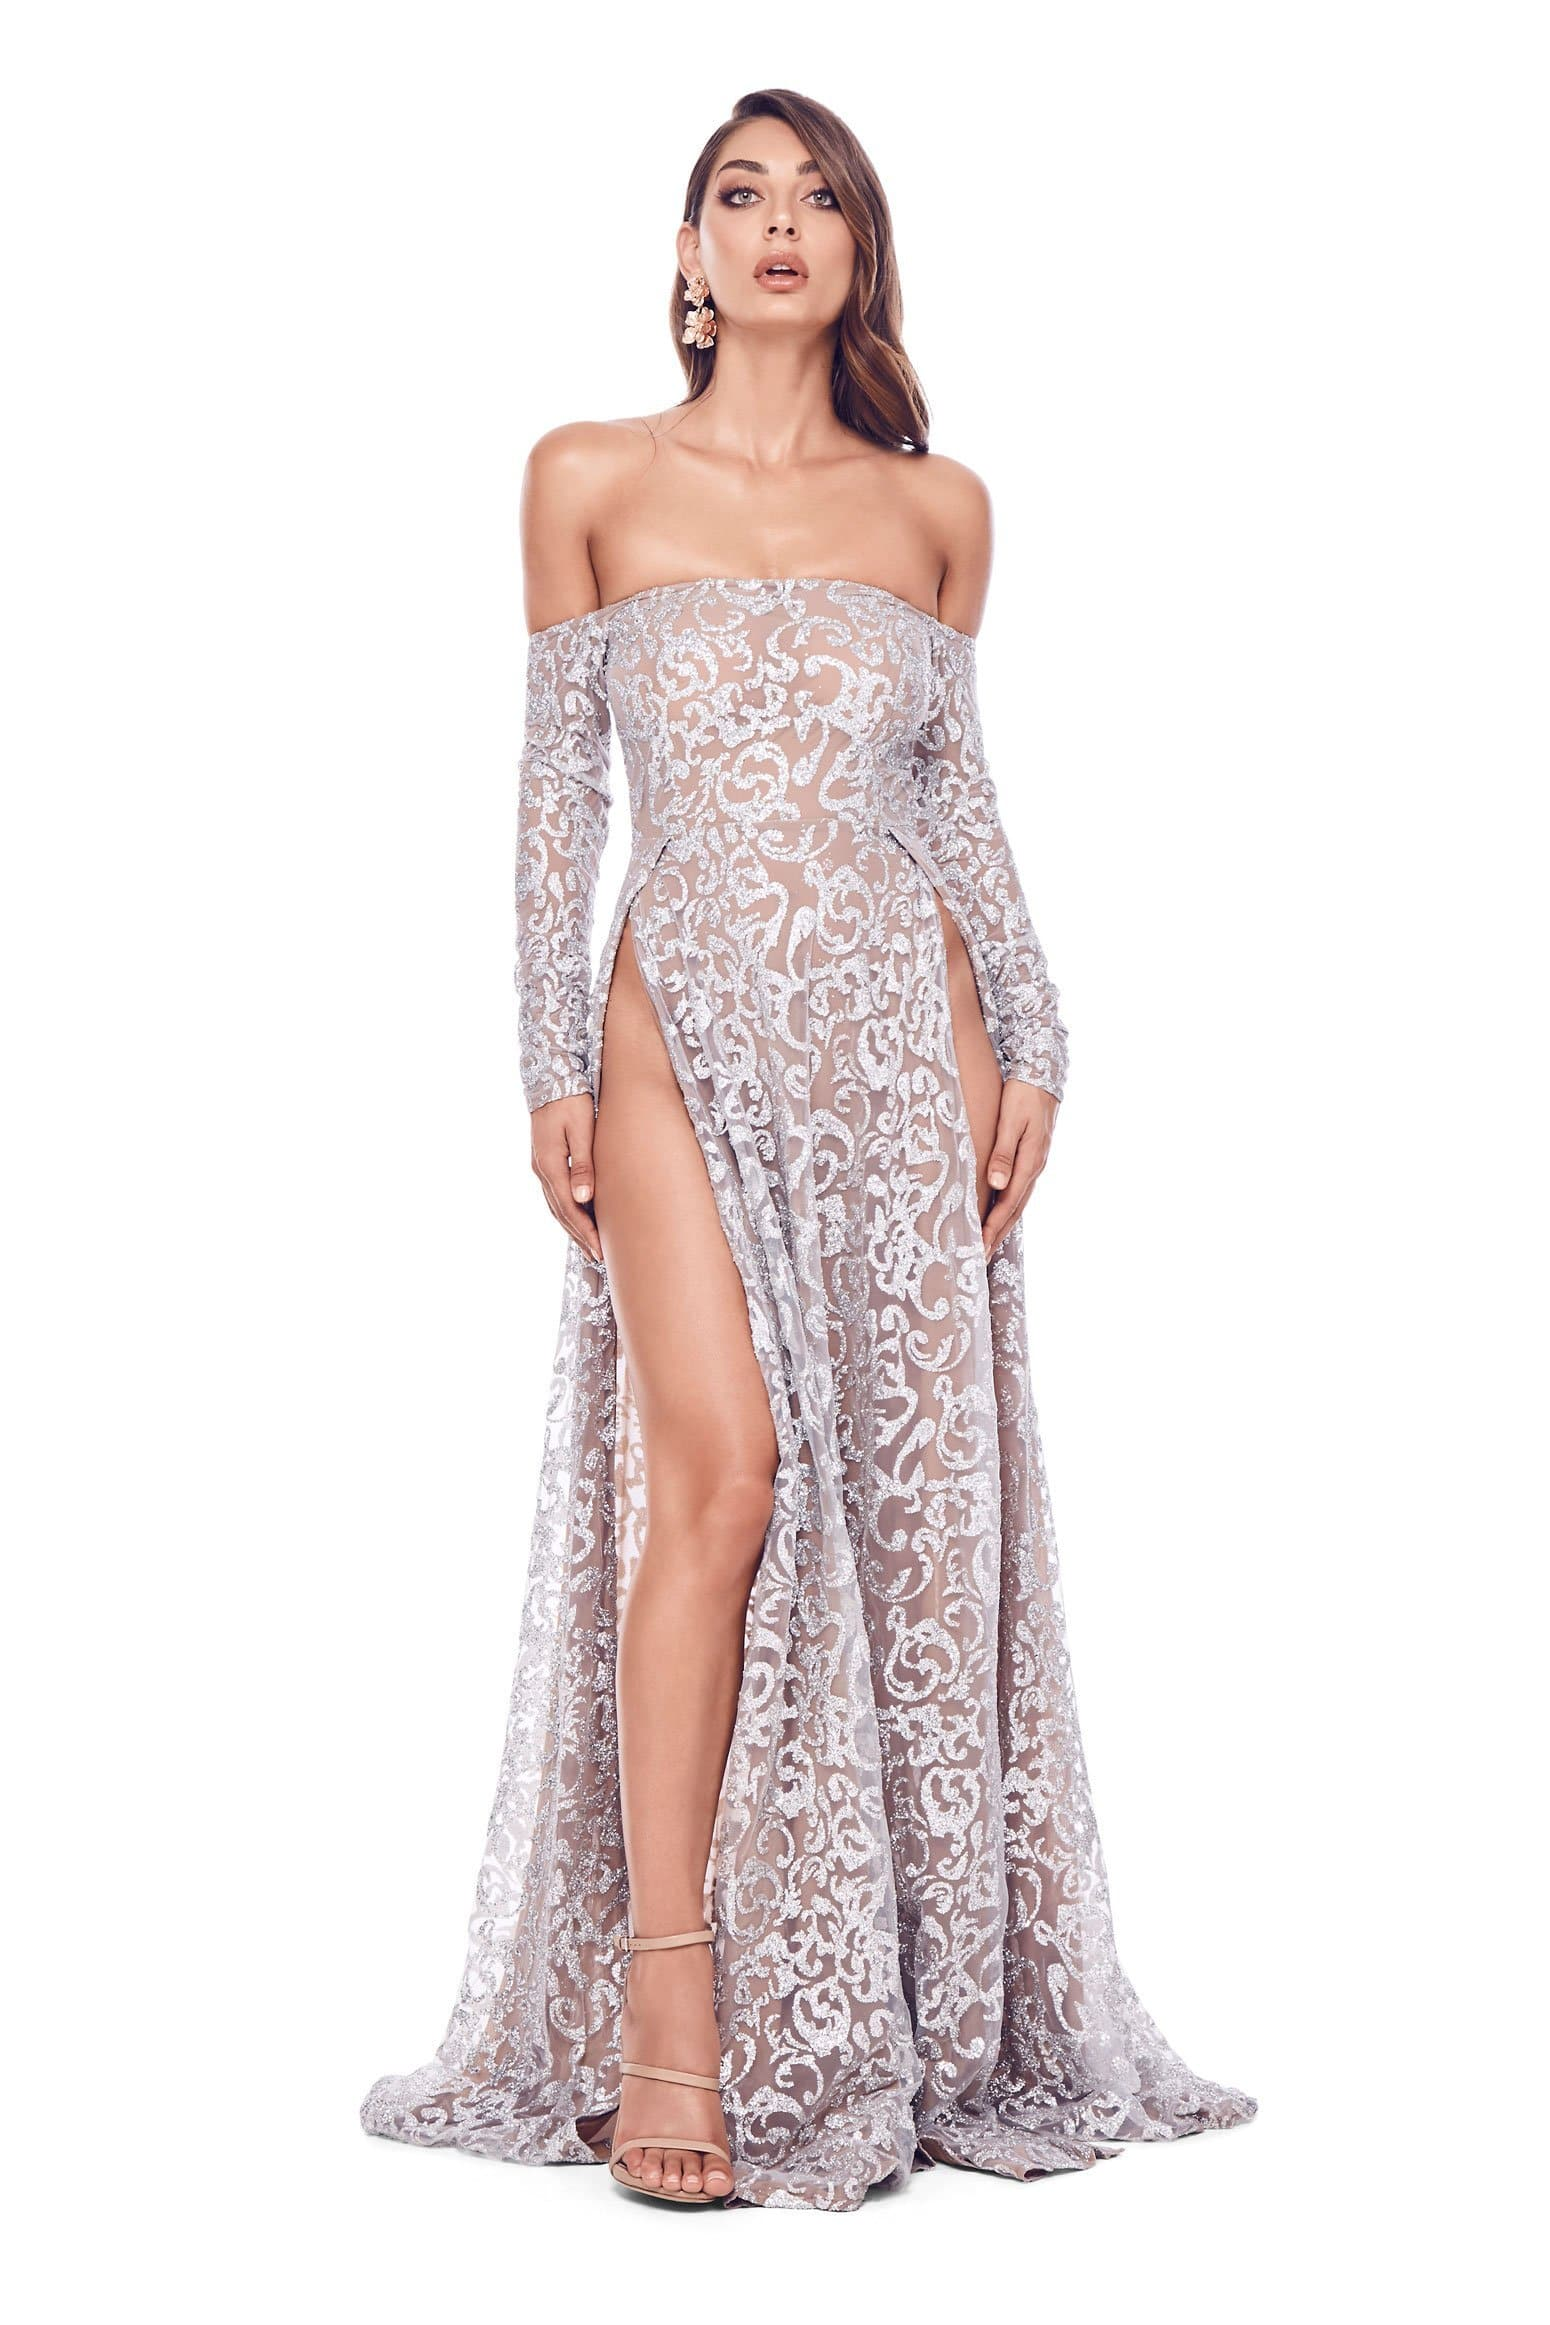 Flame - Silver Glitter Gown with Off-Shoulder Long Sleeves & Side Slit